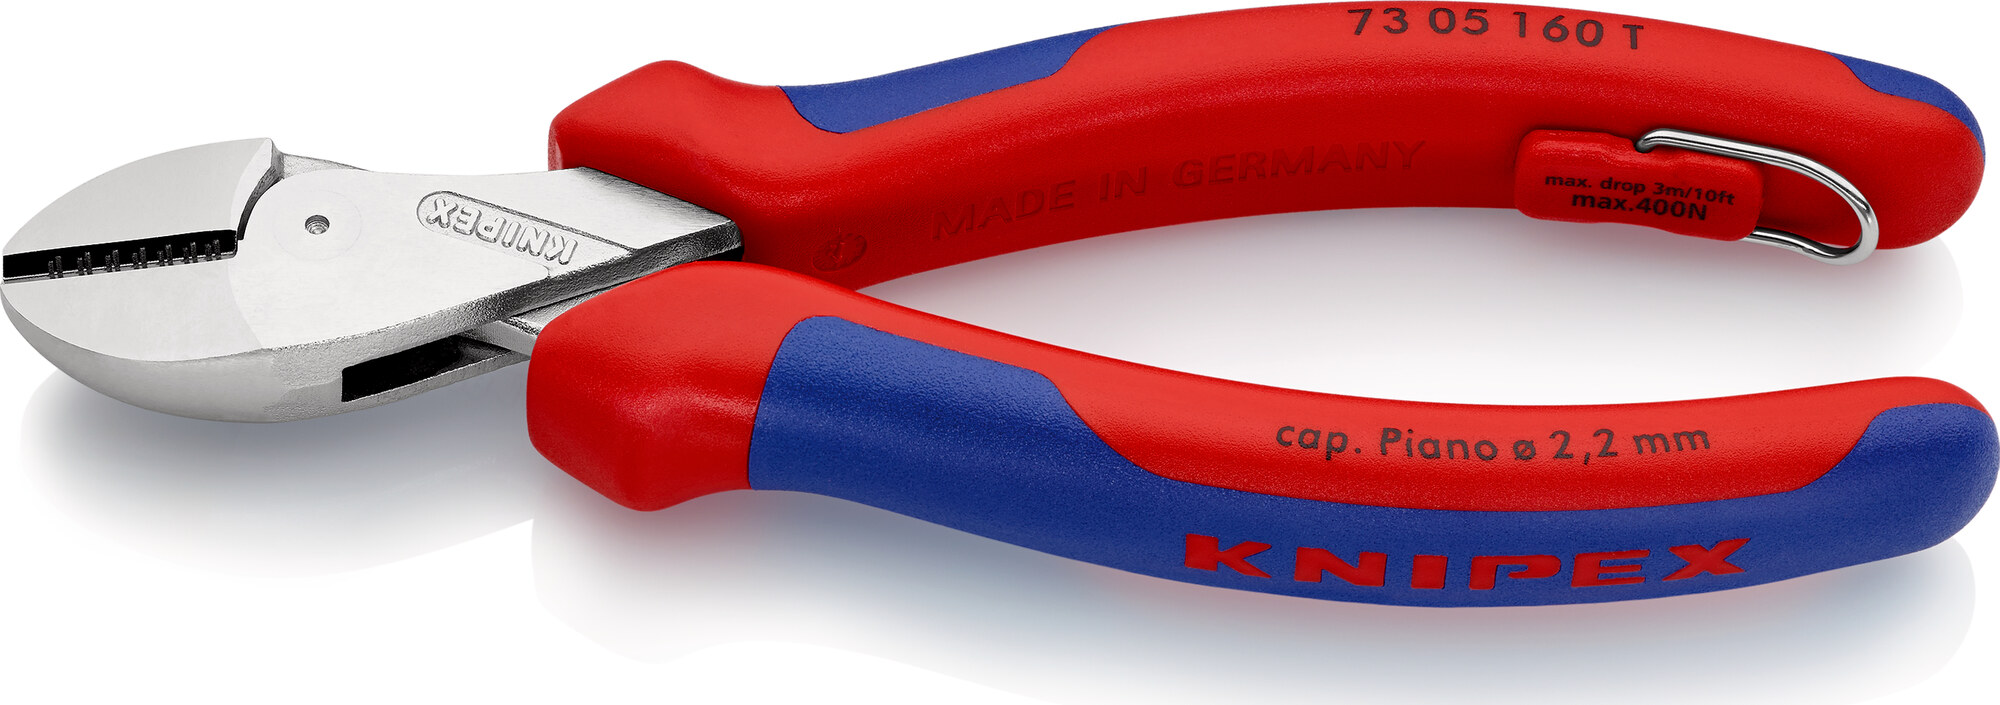 KNIPEX KNIPEX X-Cut® with tether attachment point with multi-component grips 160 mm